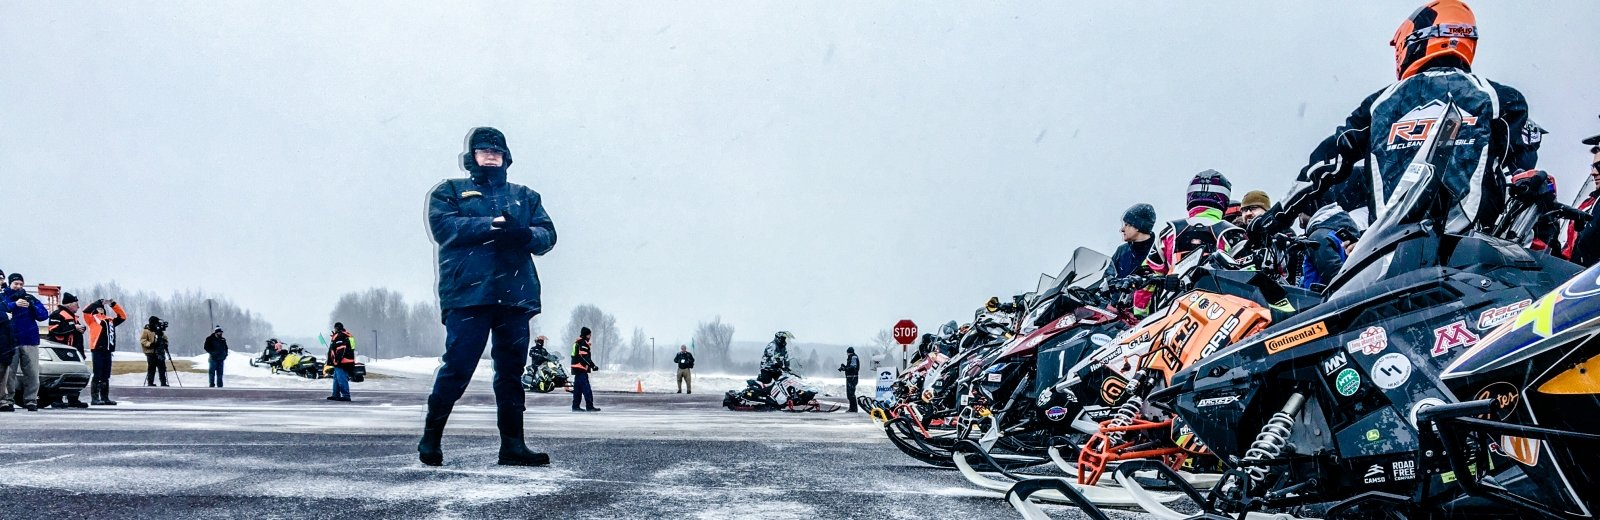 A man standing next to the lineup of snowmobiles and their riders.